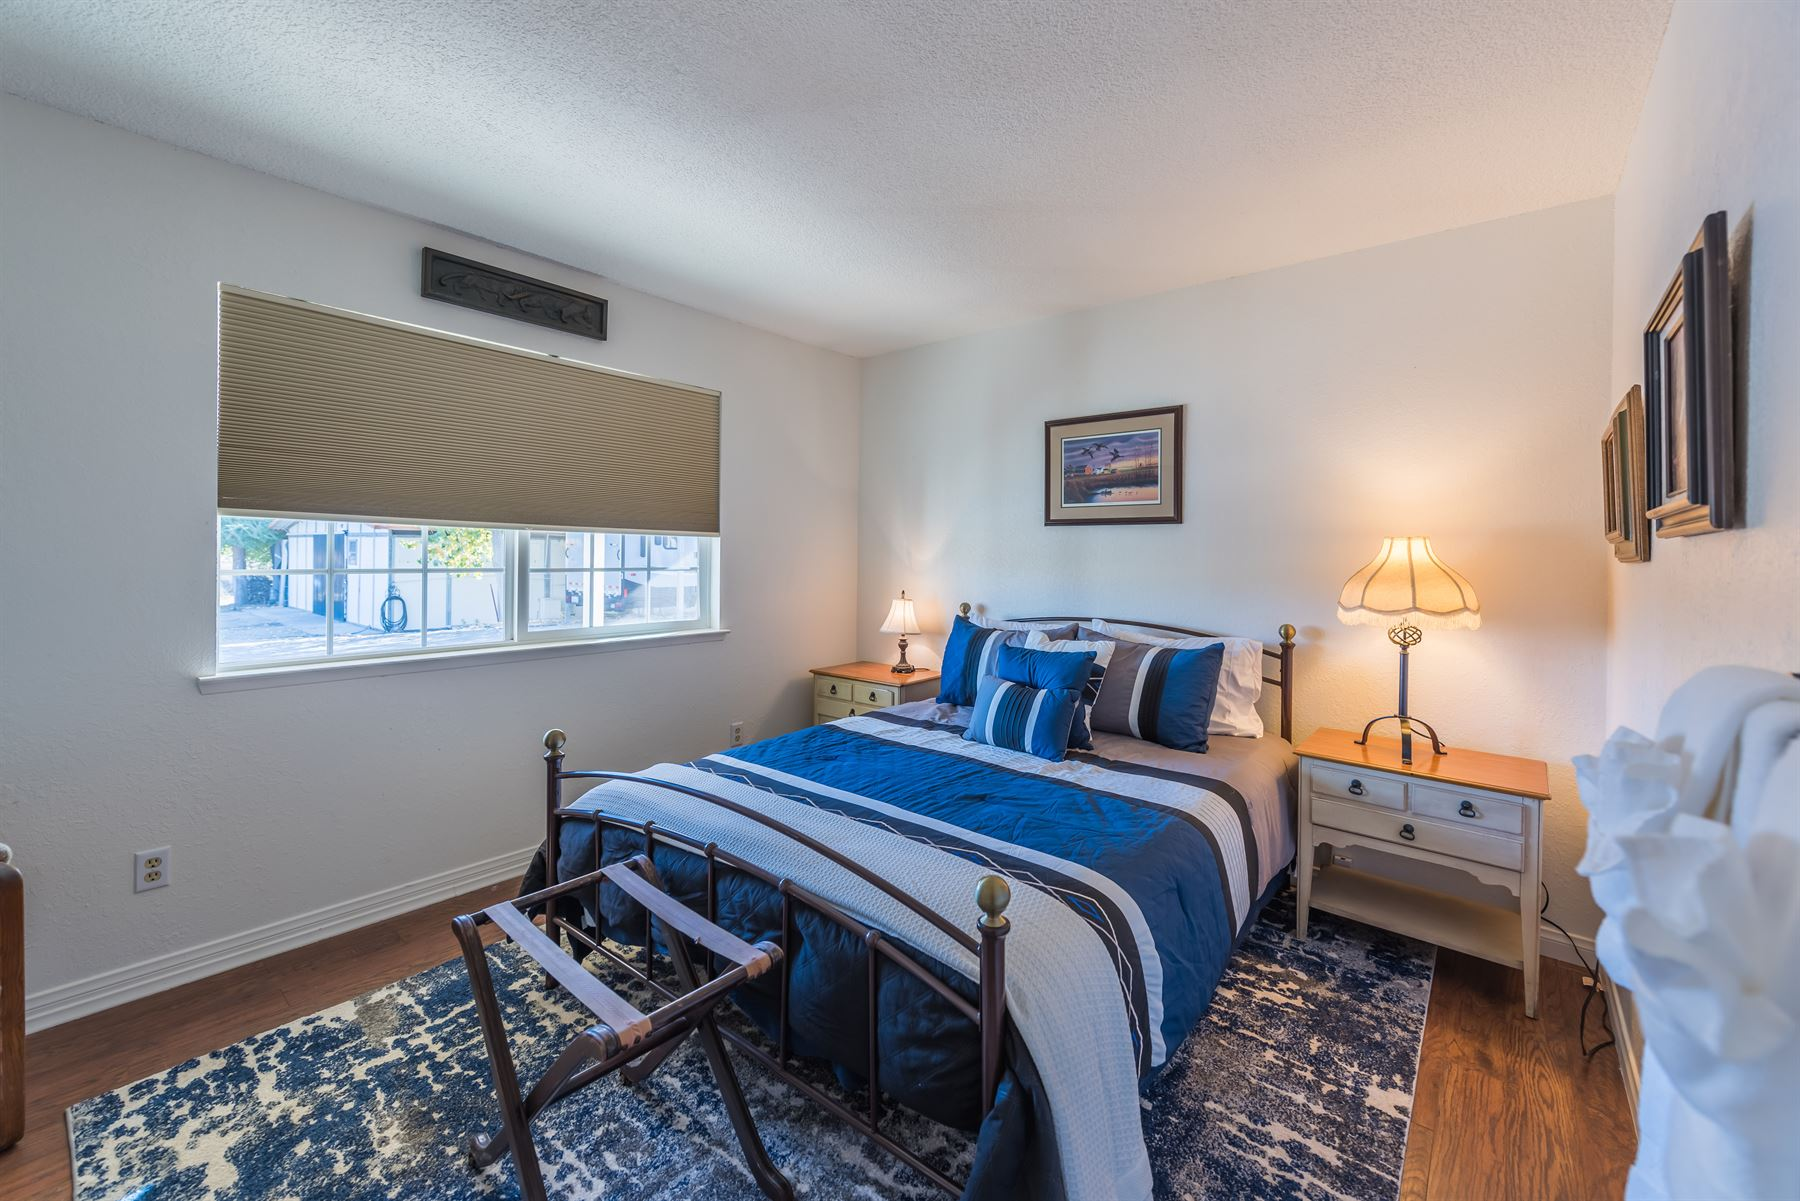 Oak Pass Ranch - Interior - Bedroom with blue linens on bed